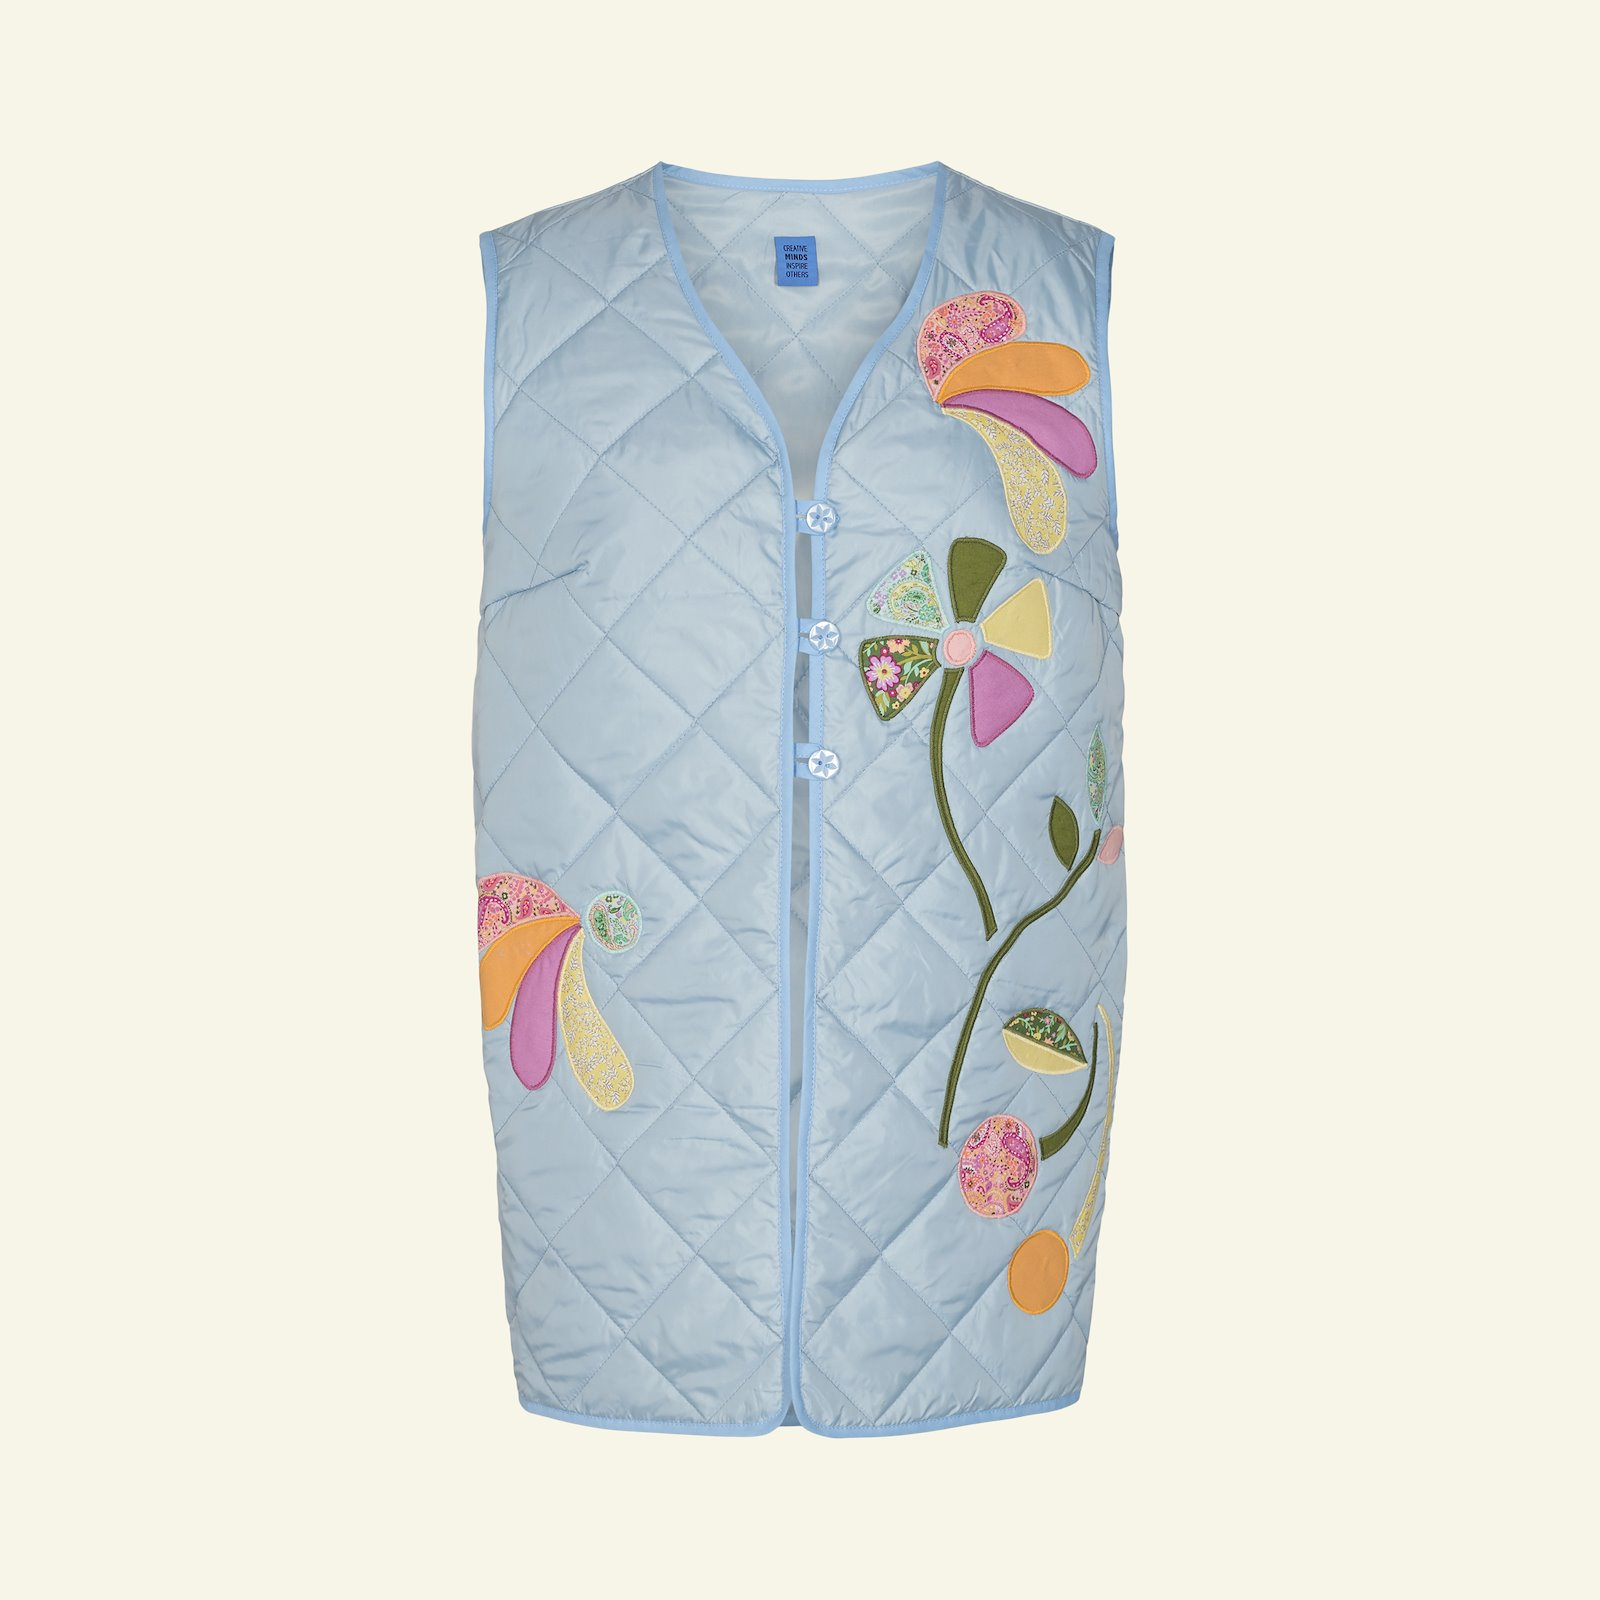 Quilted jacket and waistcoat, 44/16 p24047_920225_66019_33224_sskit